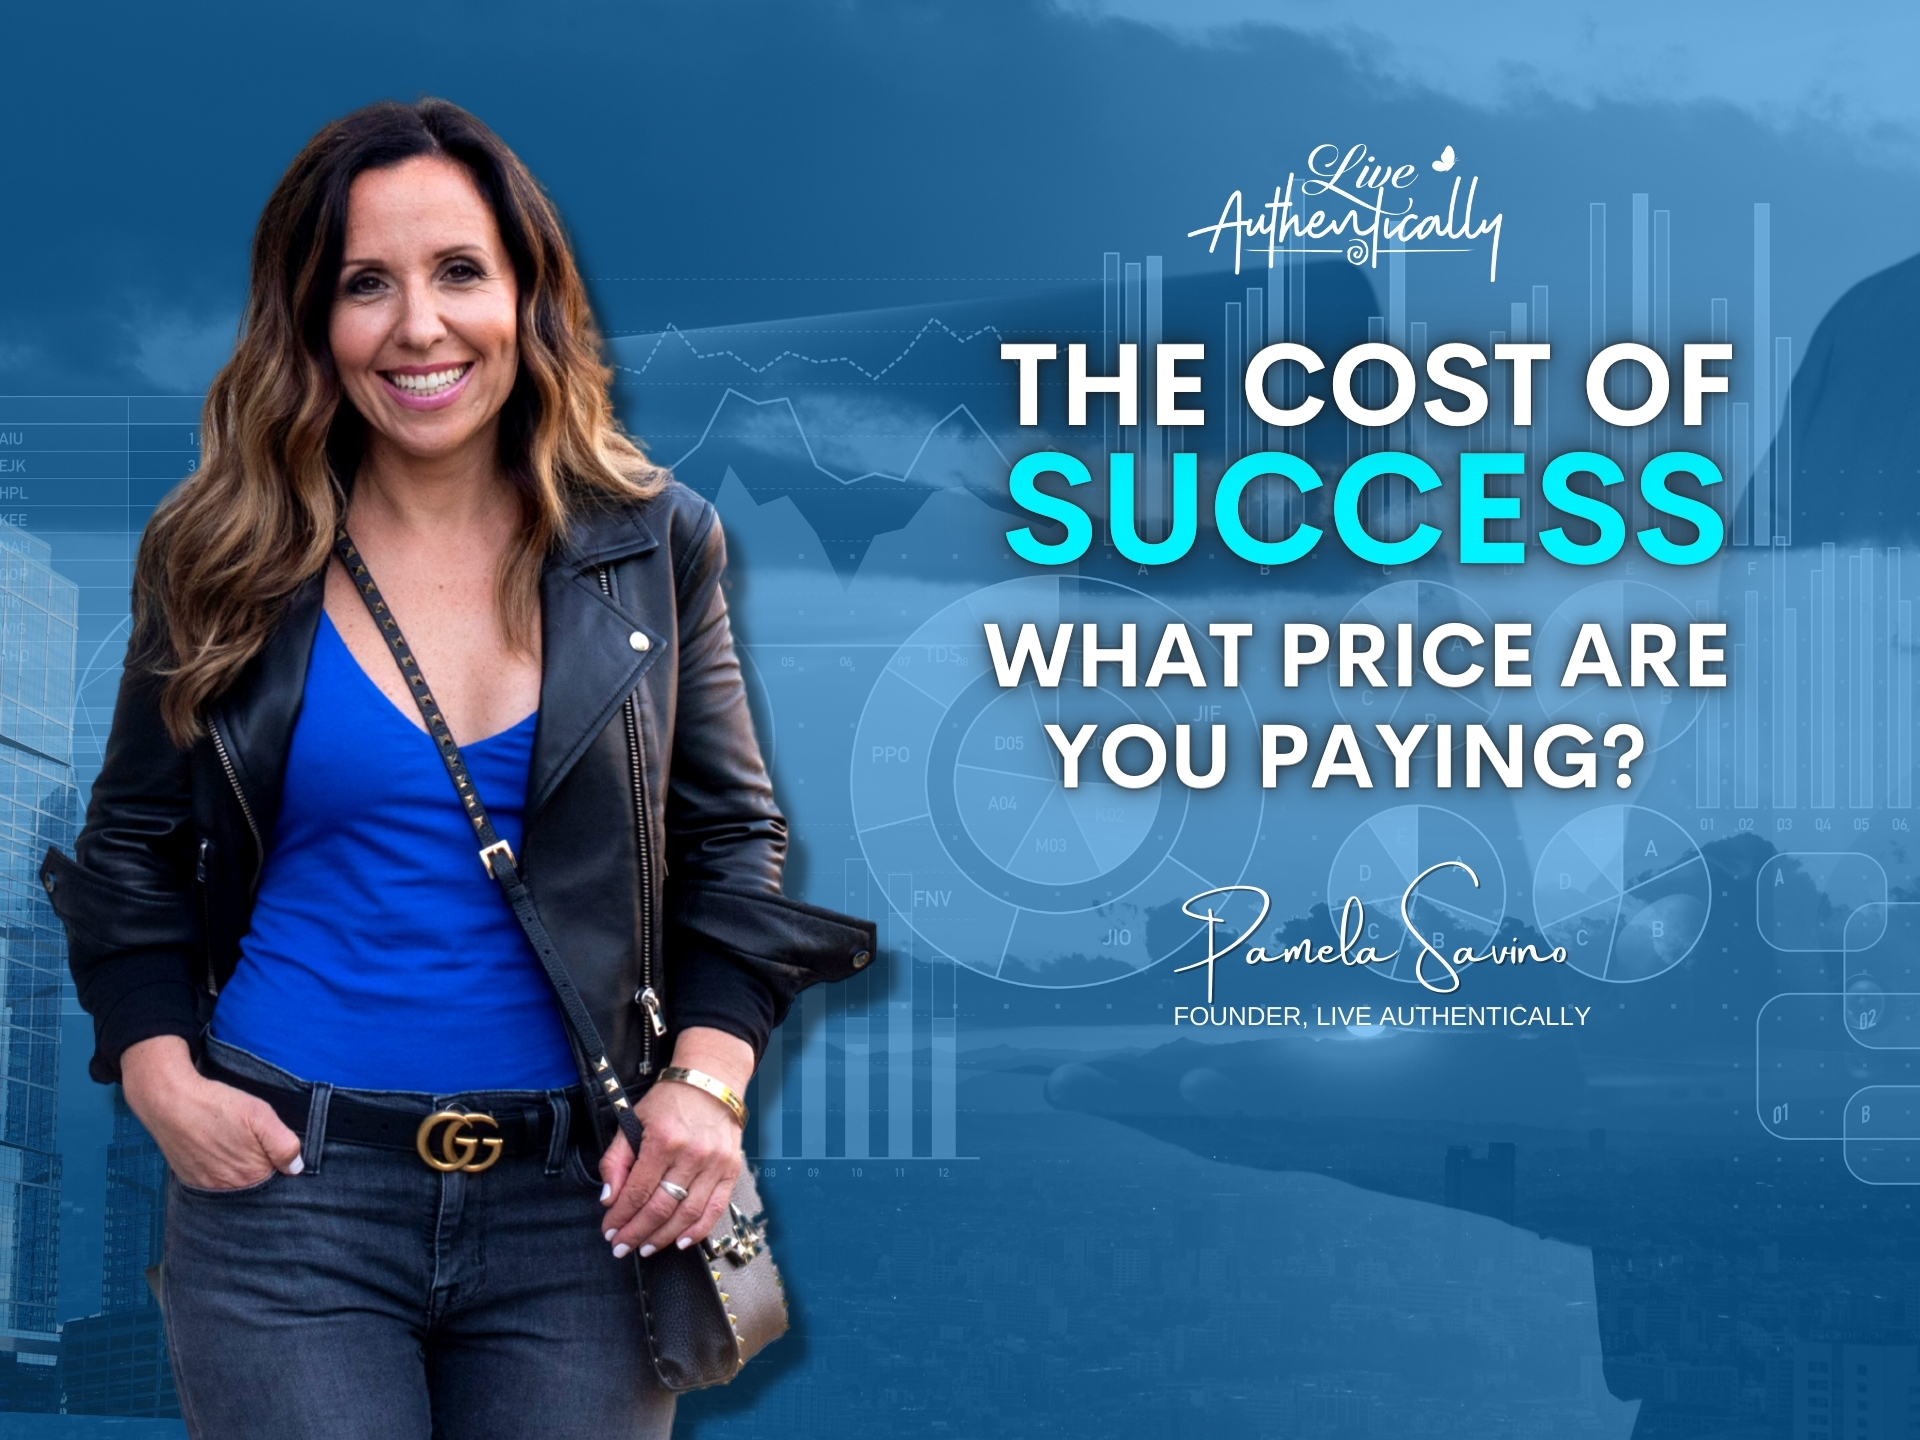 The Cost of Success. What Price Are You Paying?